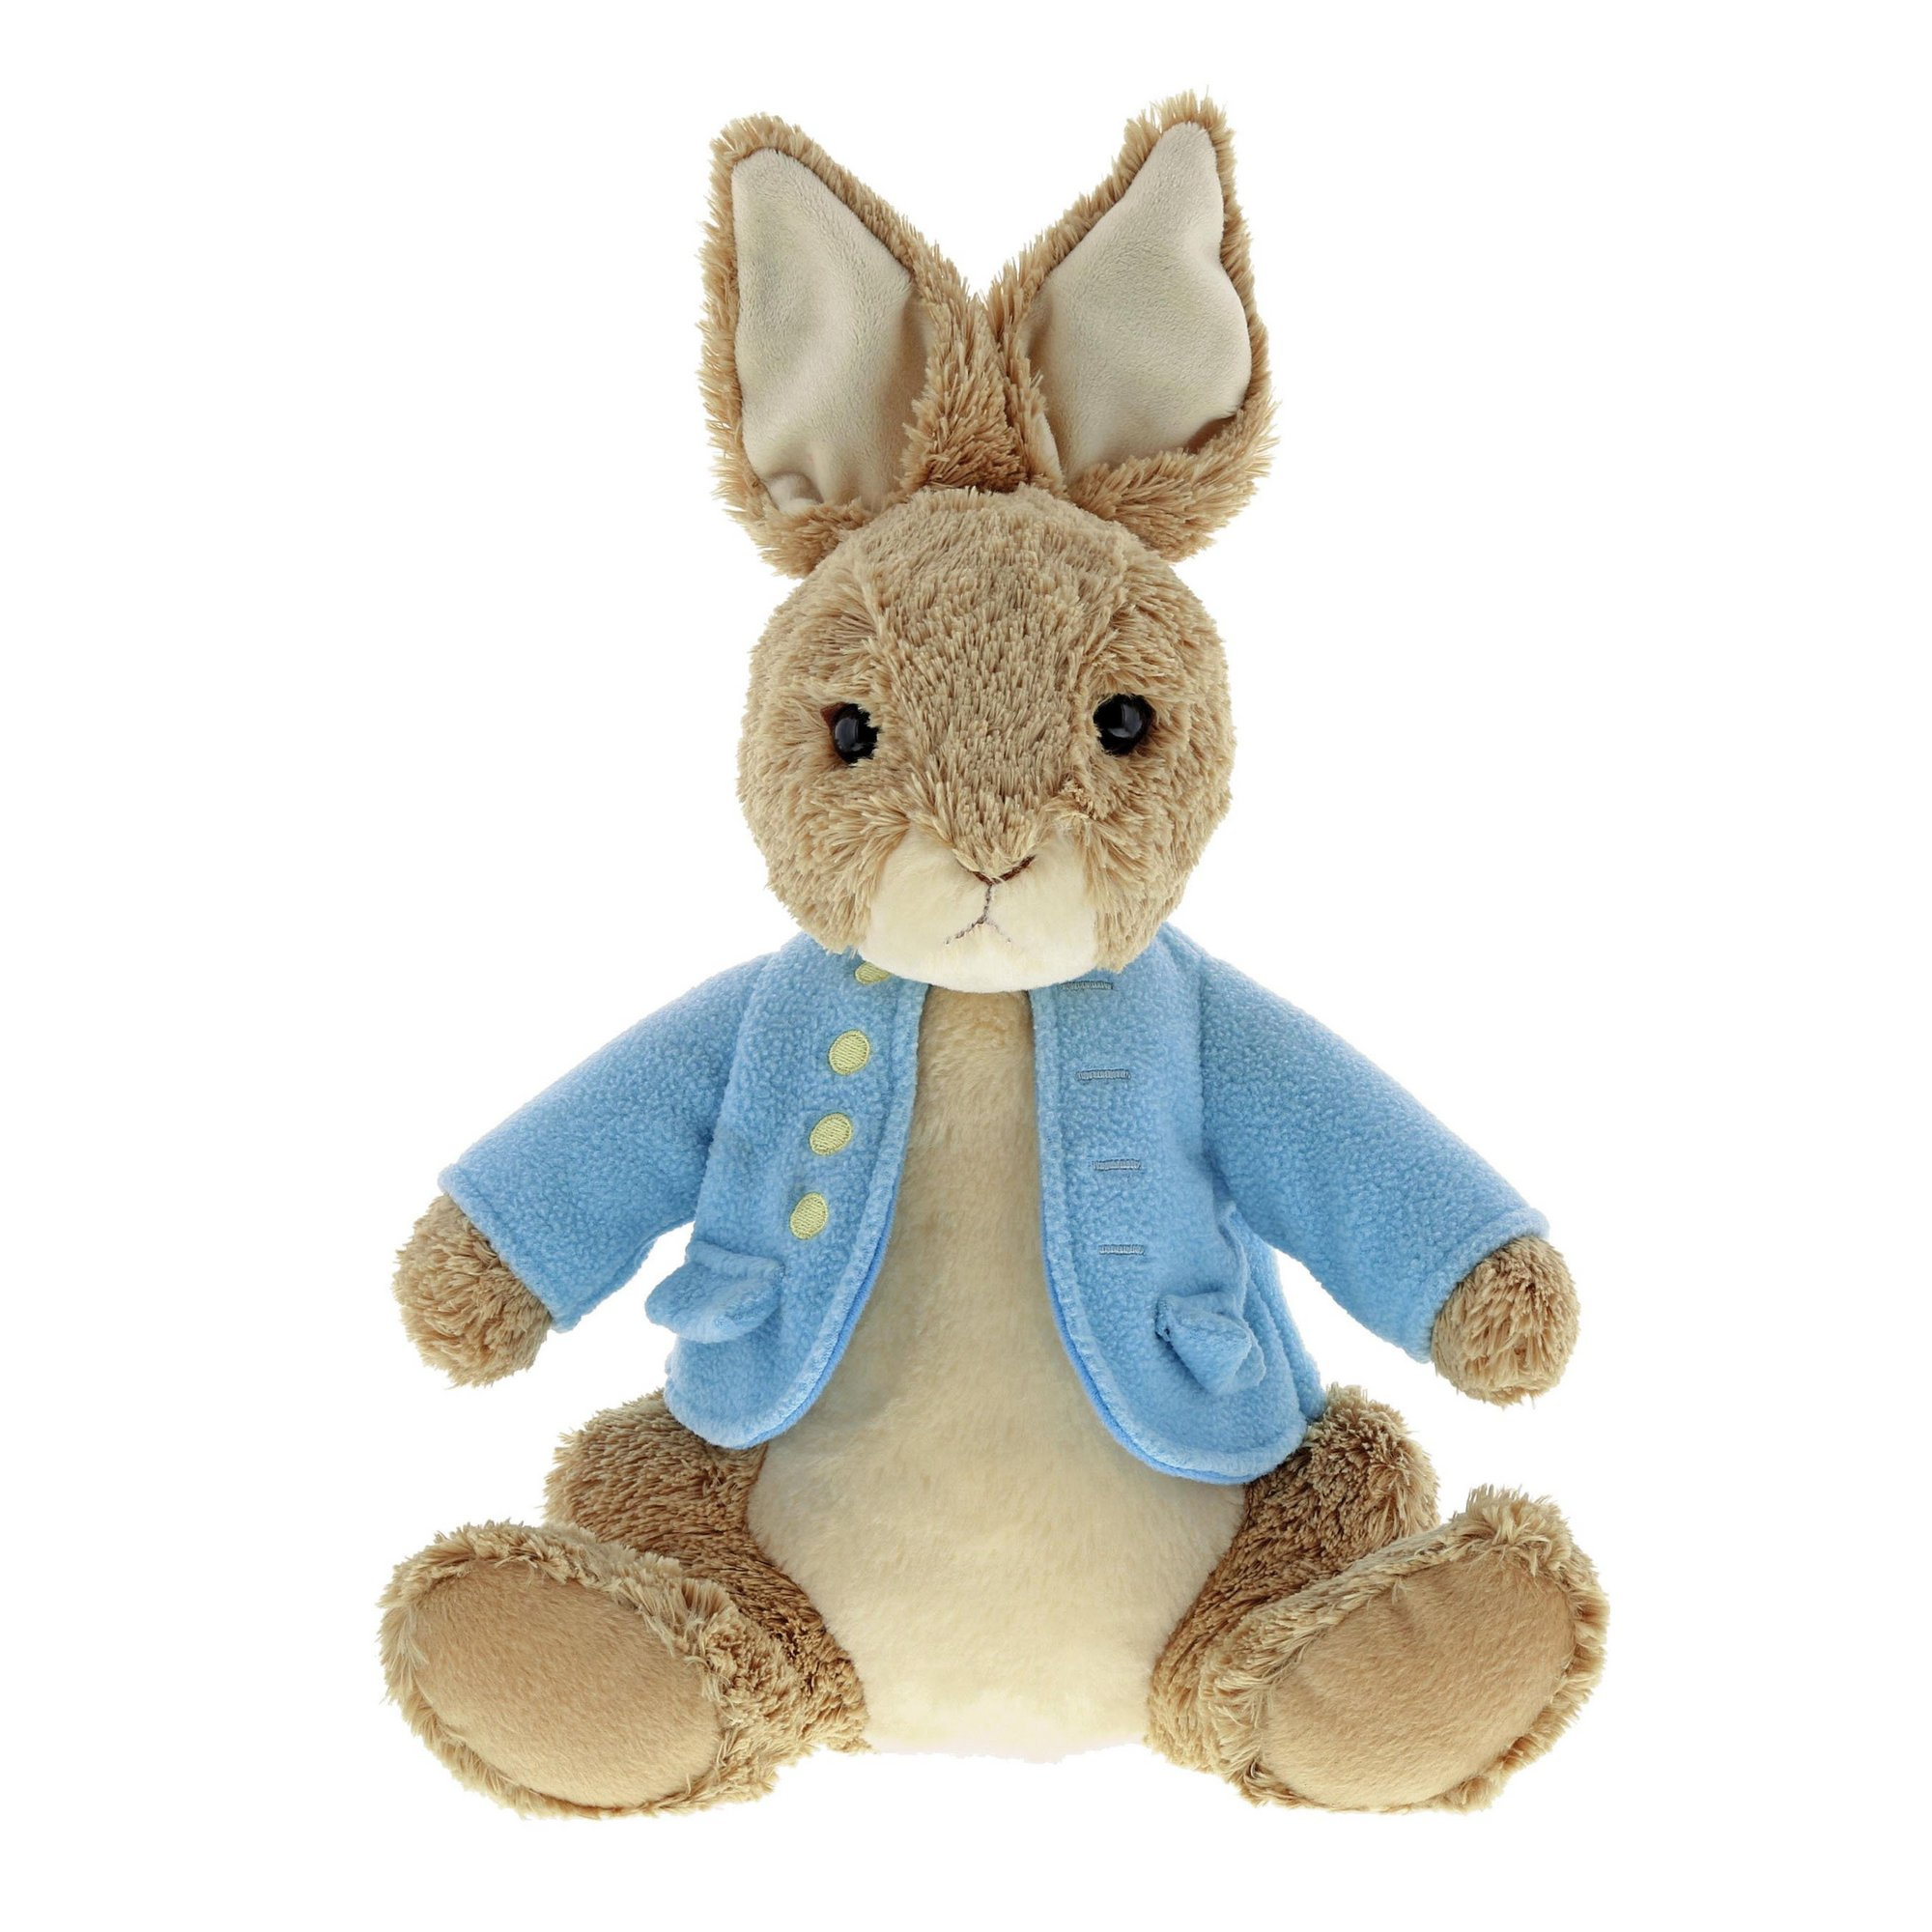 Image of Gund Peter Rabbit Extra Large Soft Toy